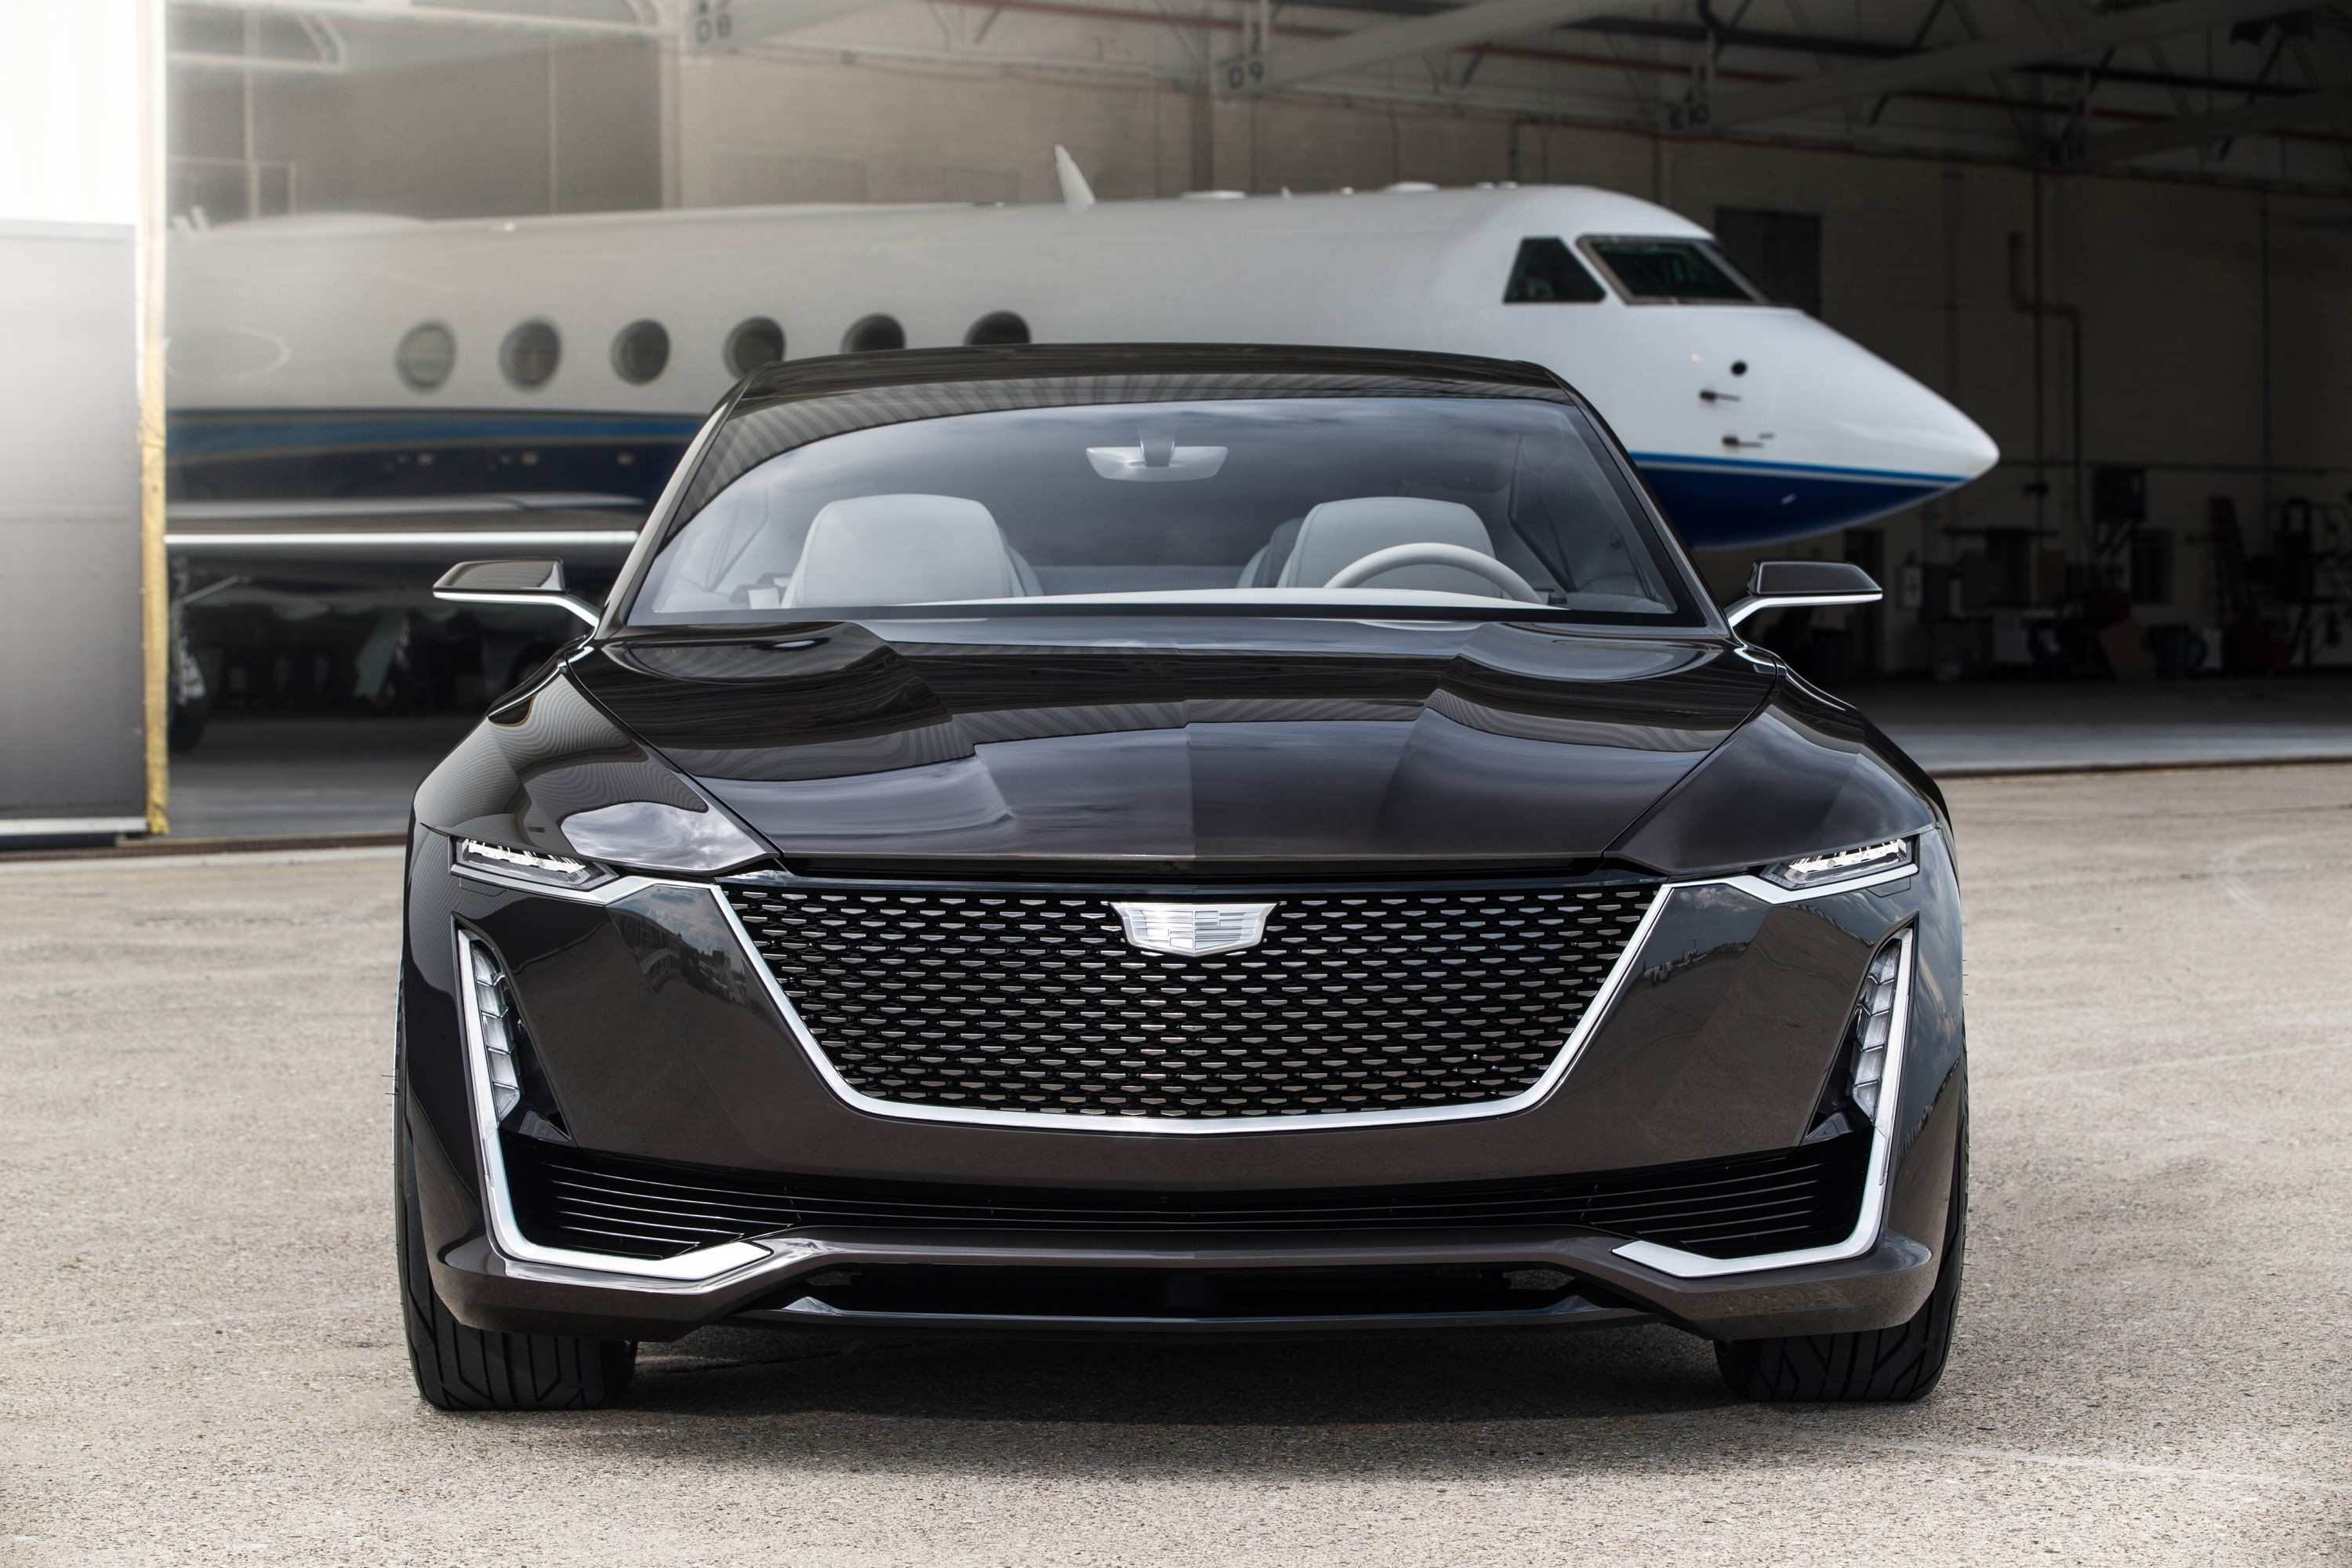 81 New 2020 Candillac Xts Spy Shoot